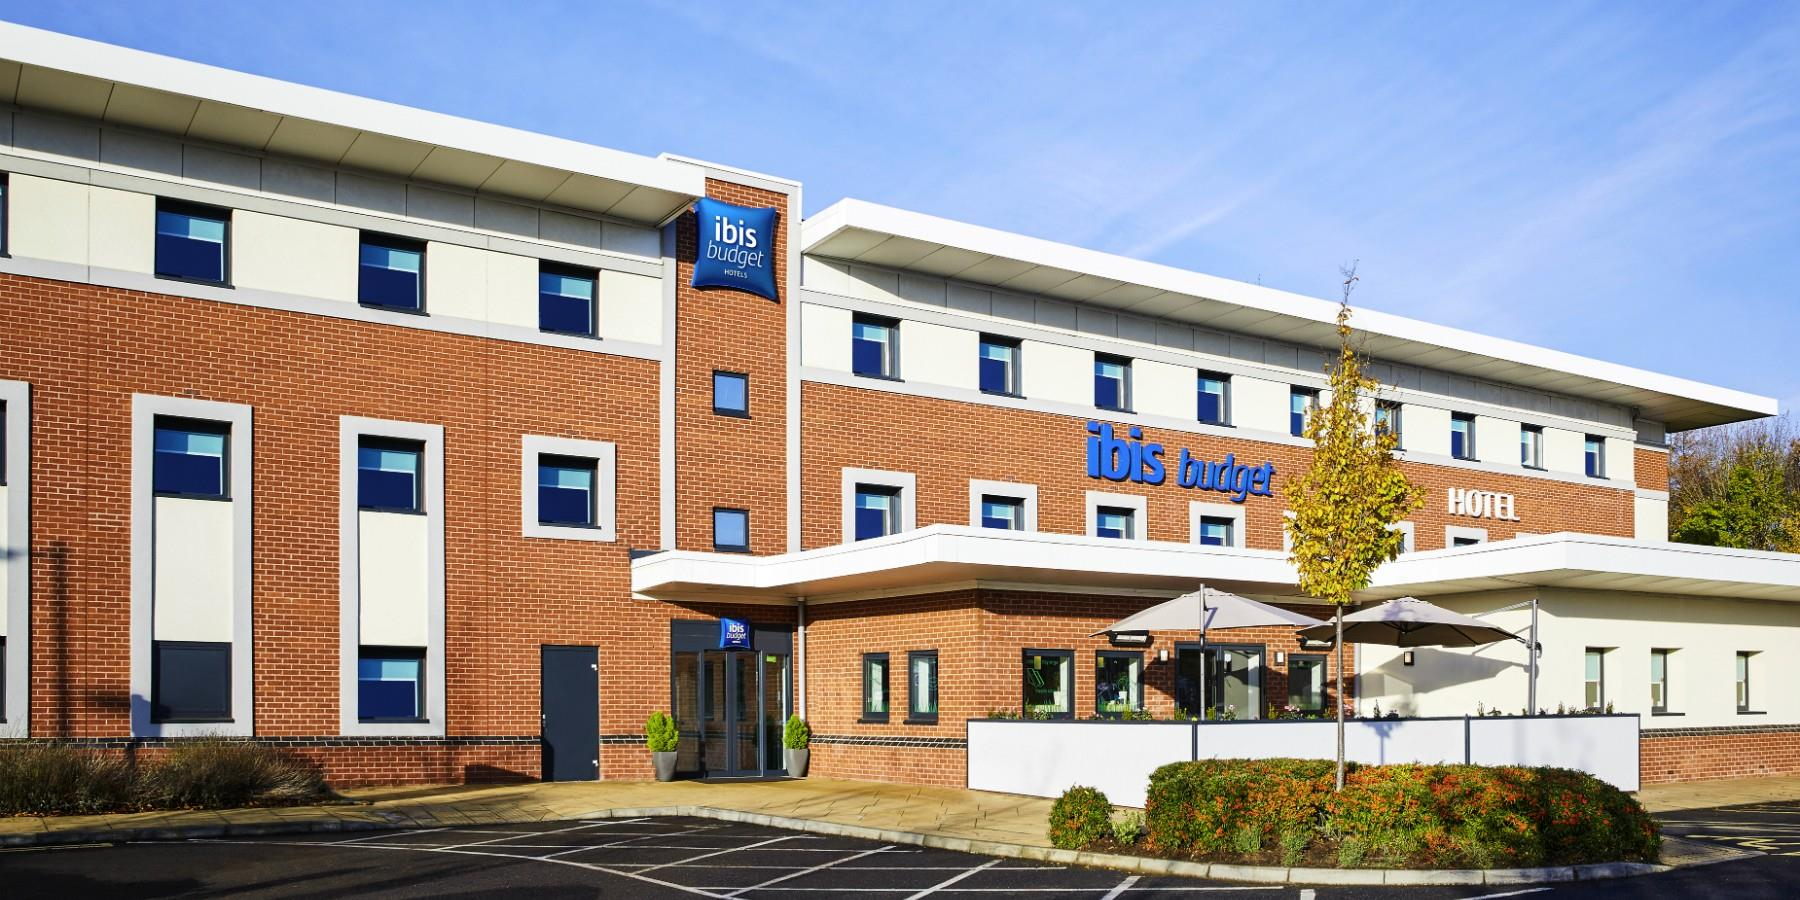 Ibis Budget Leicester - Accommodation in Leicester